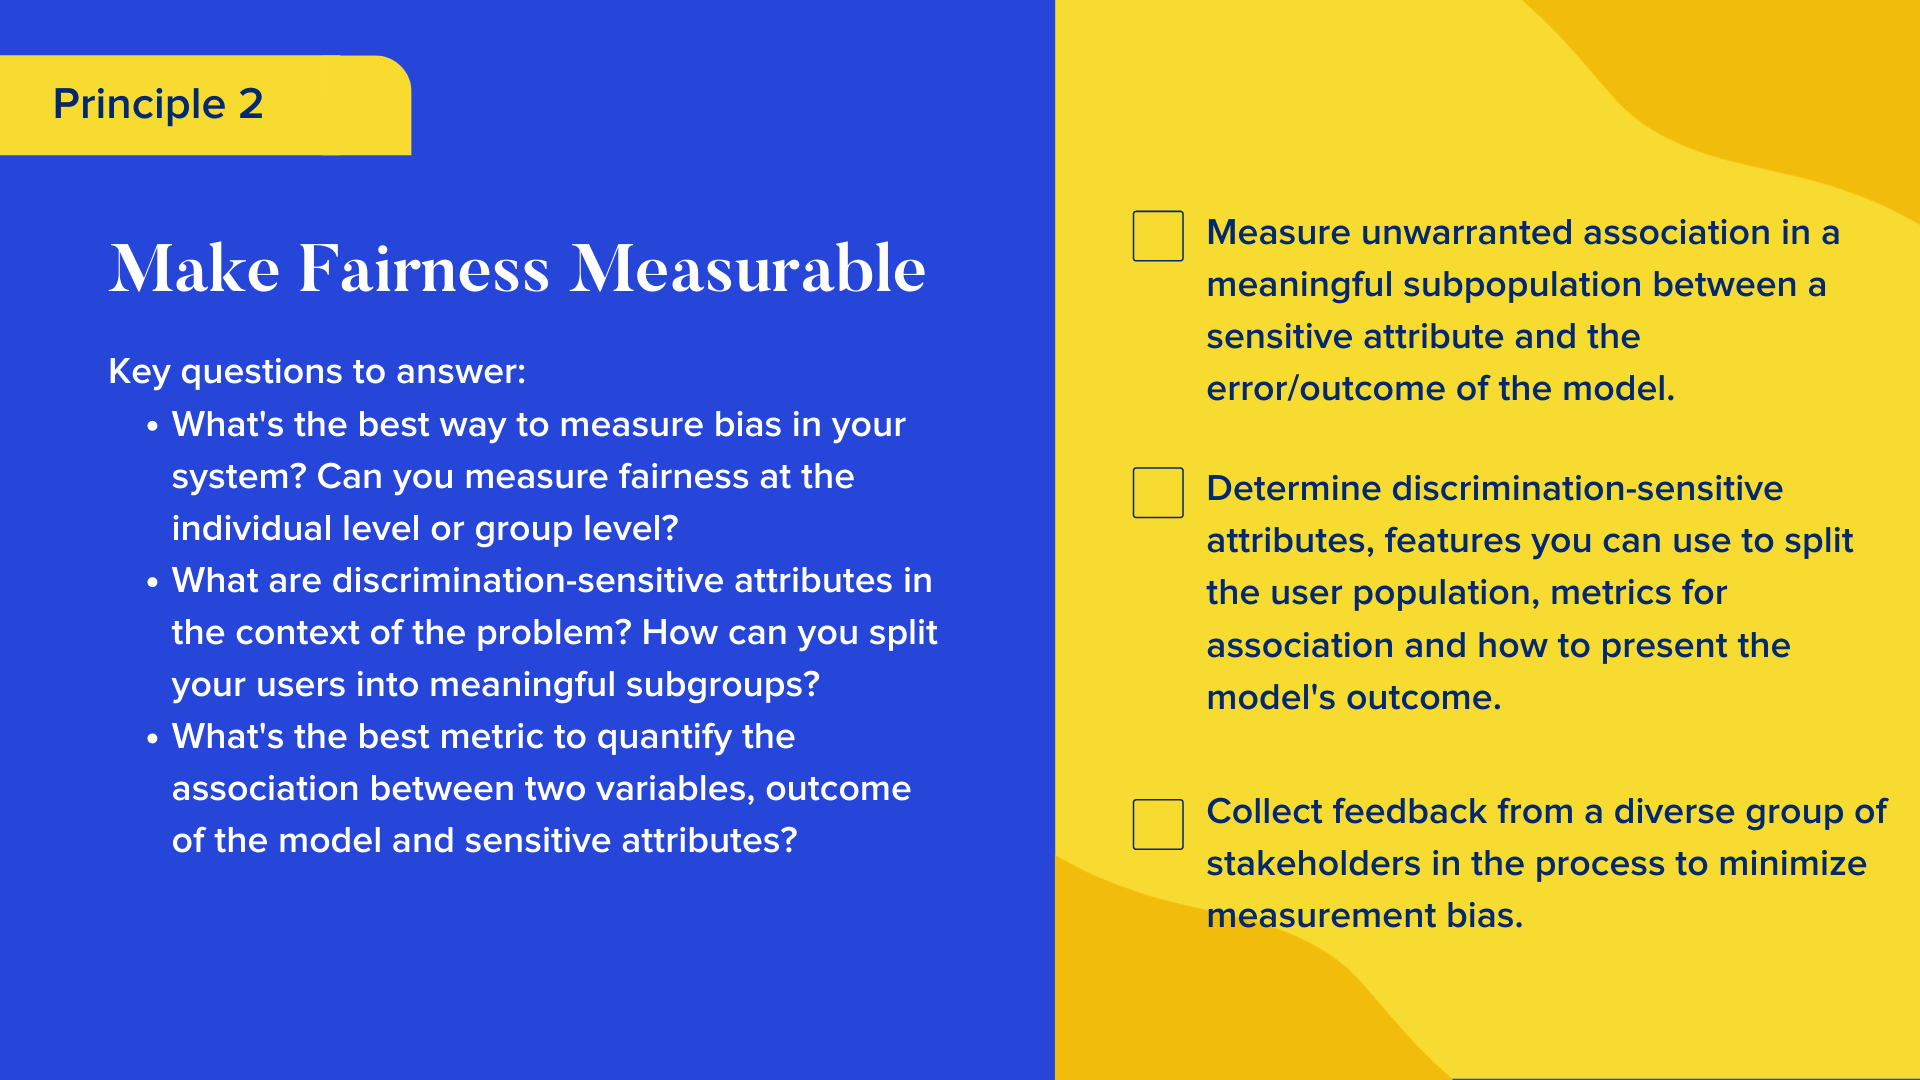 Key questions to answer  What's the best way to measure bias in your system? Can you measure fairness at the individual level or group level? What are discrimination-sensitive attributes in the context of the problem? How can you split your users into meaningful subgroups?  What's the best metric to quantify the association between two variables, outcome of the model and sensitive attributes?  Checklist  Measure unwarranted association in a meaningful subpopulation between a sensitive attribute and the error/outcome of the model. Determine discrimination-sensitive attributes, features you can use to split the user population, metrics for association and how to present the model's outcome. Collect feedback from a diverse group of stakeholders in the process to minimize measurement bias.